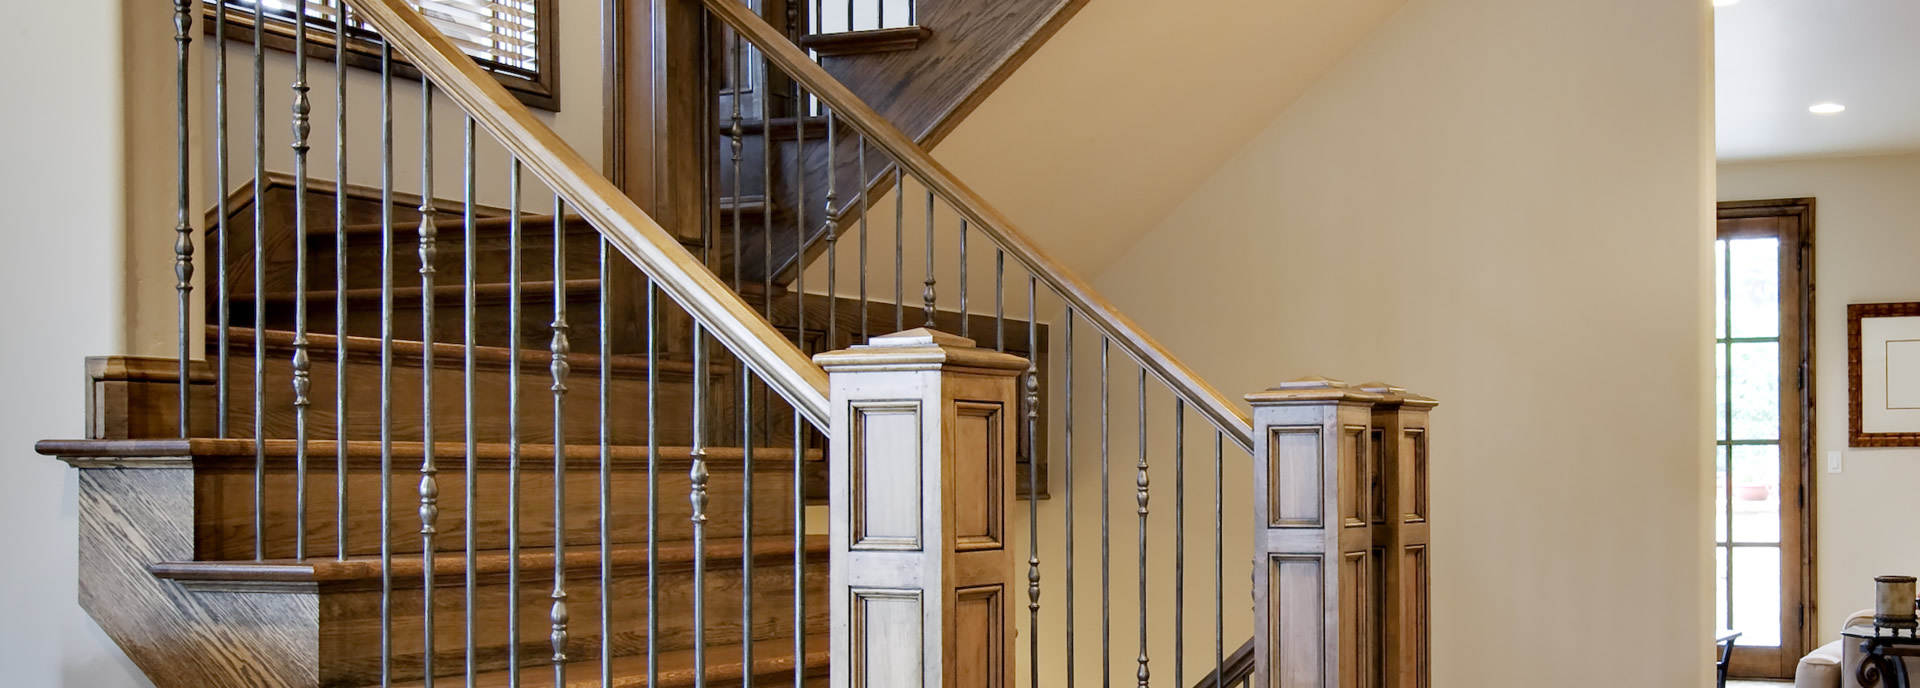 Our Favorite Wrought Iron Railing Designs of 2015 Alpharetta, GA